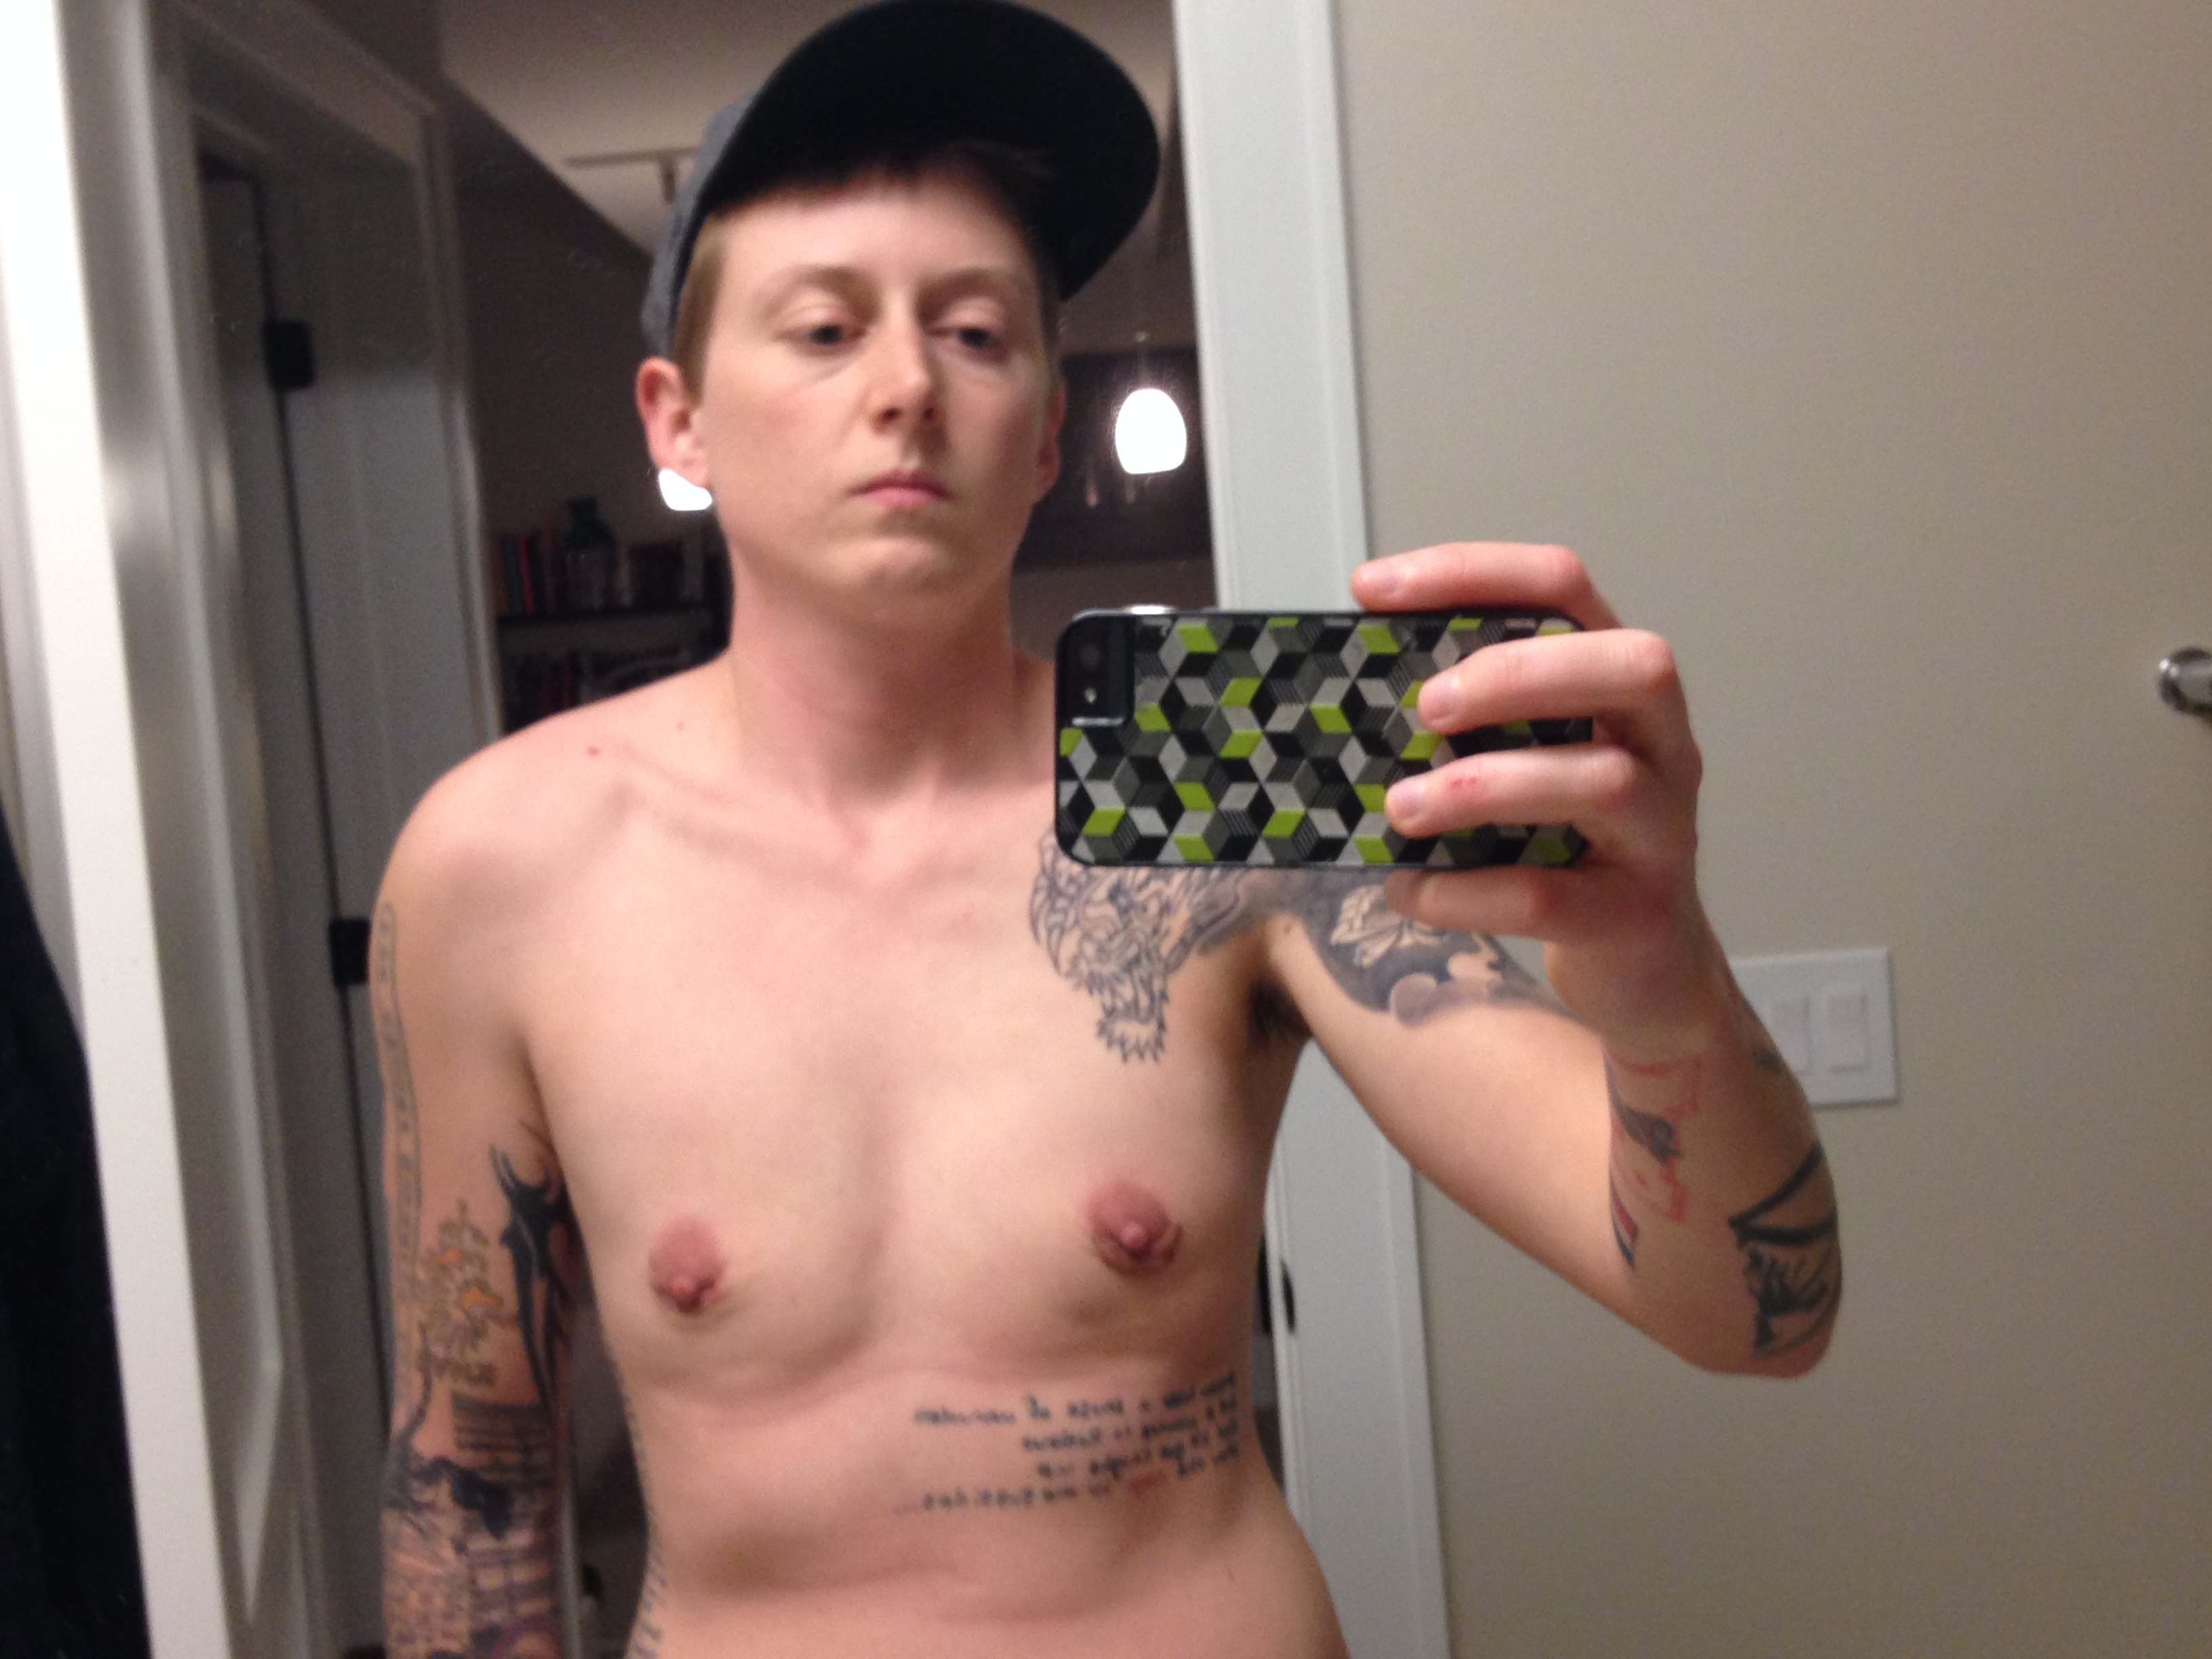 ... 16> Images For - Transgender Genital Surgery Before And After